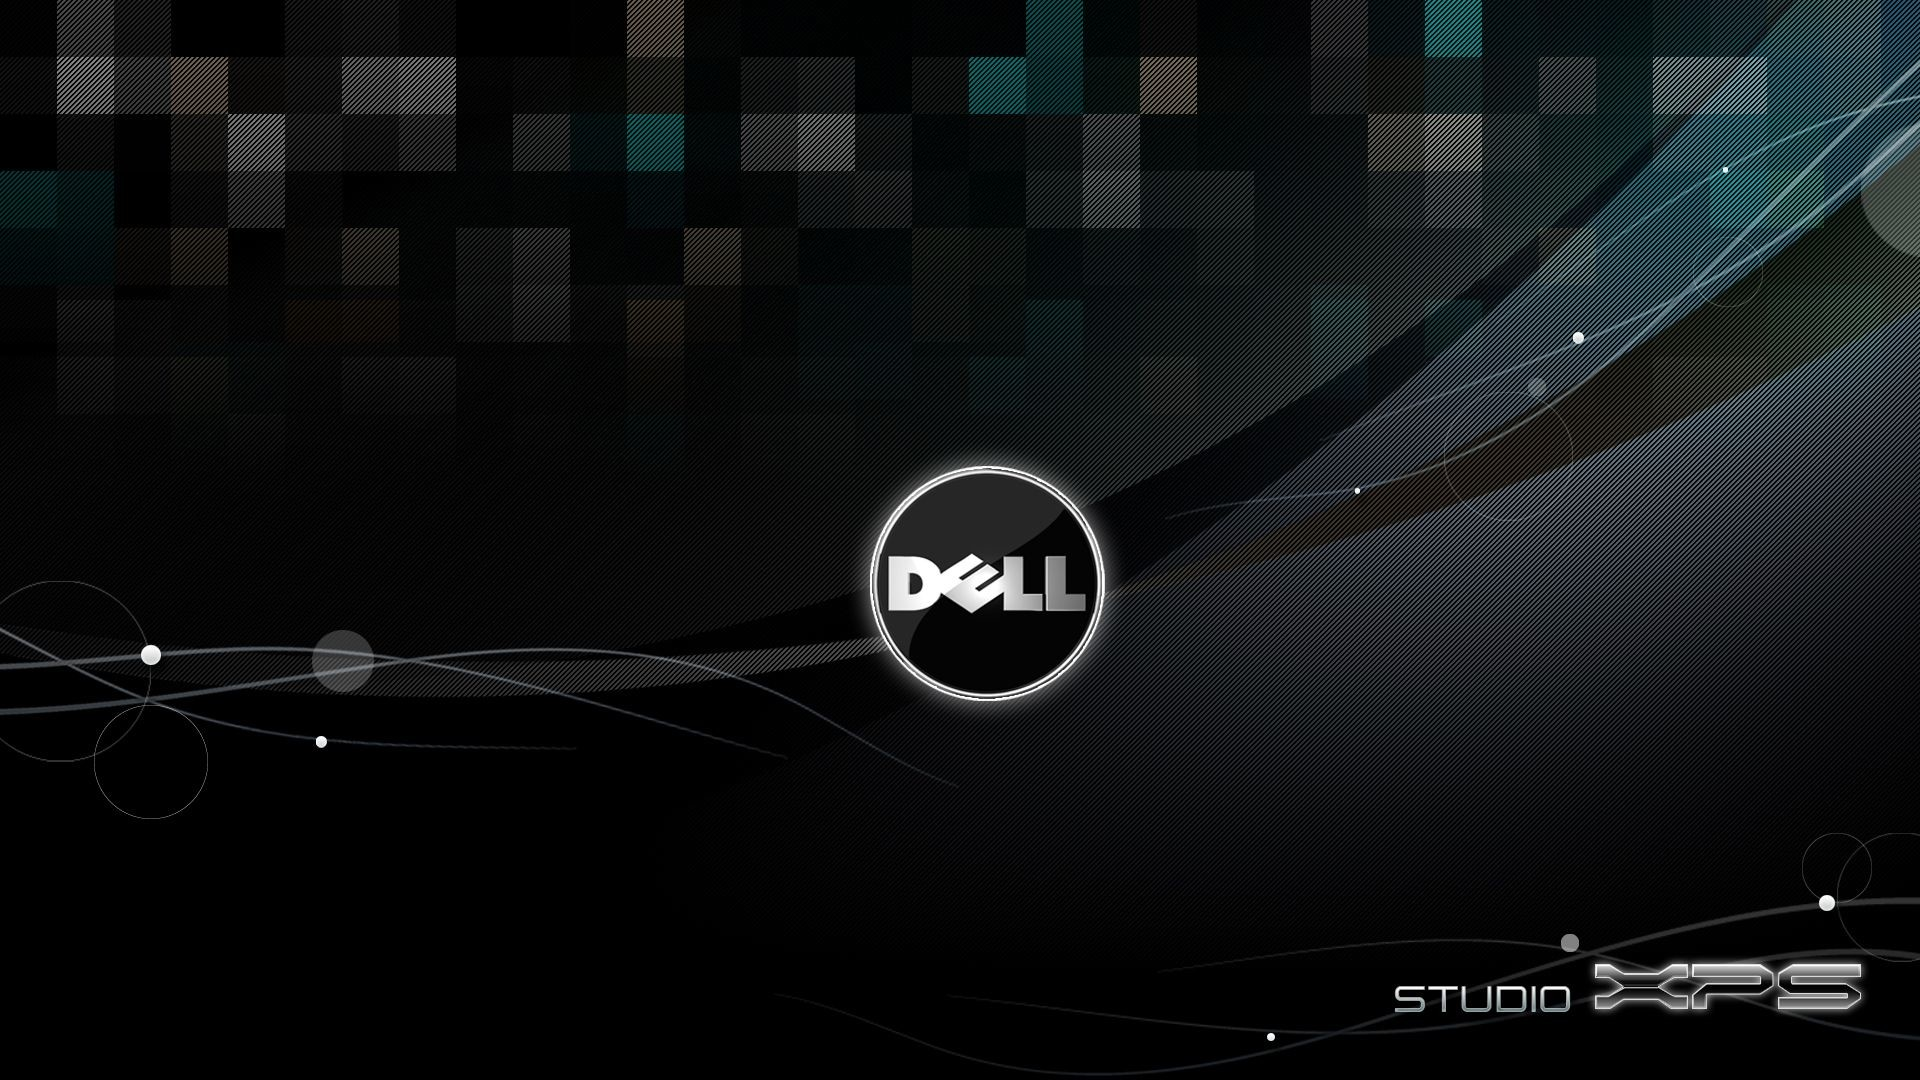 1920x1080 Dell Desktop Wallpapers Wallpapers Inbox